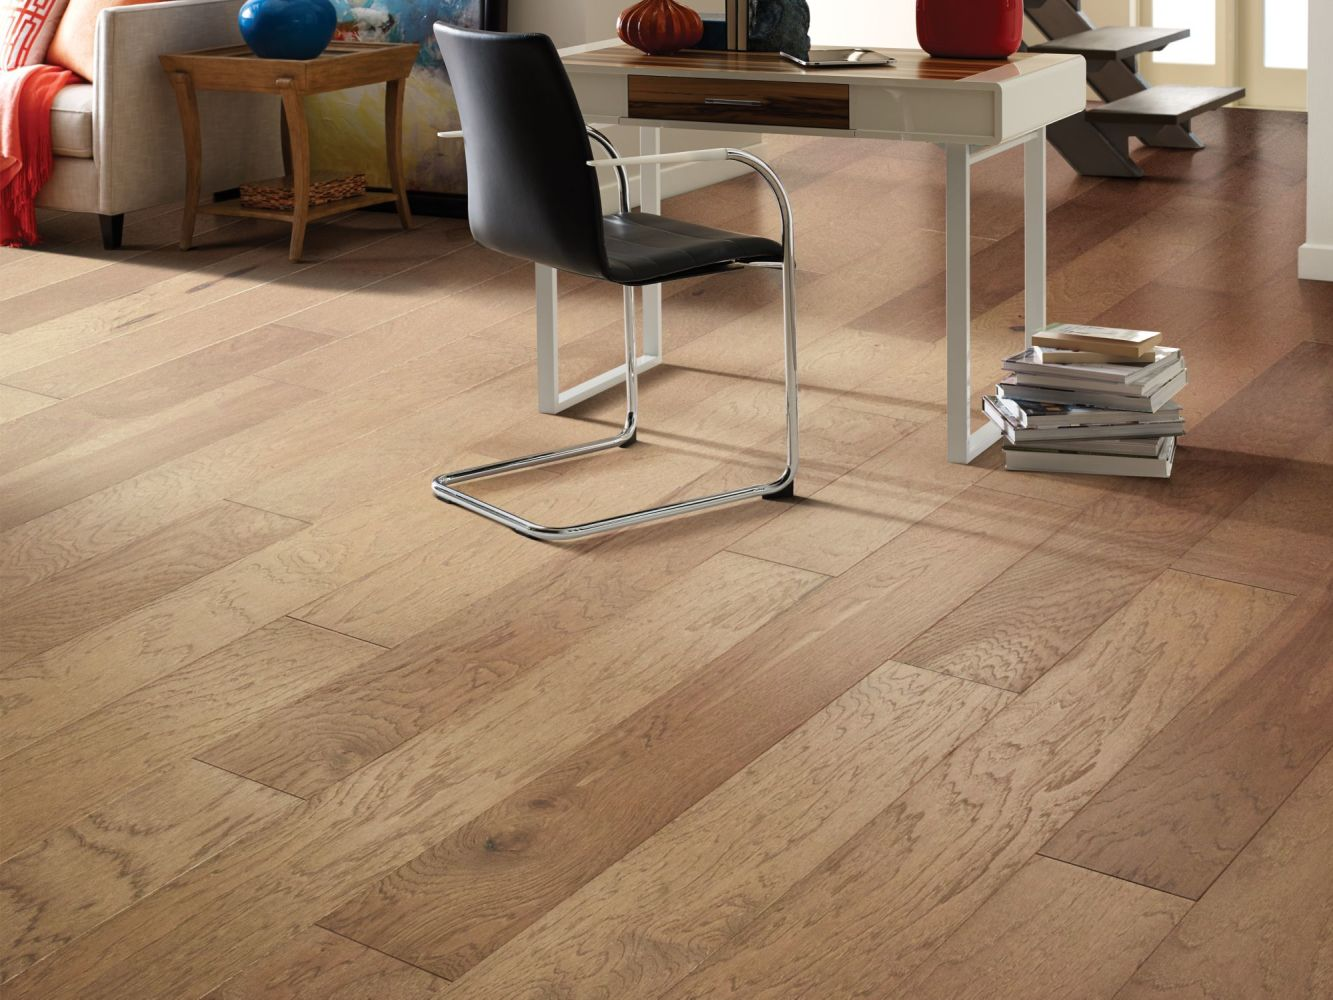 Shaw Floors Home Fn Gold Hardwood Piedmont Hickory Red Clay 02054_HW710